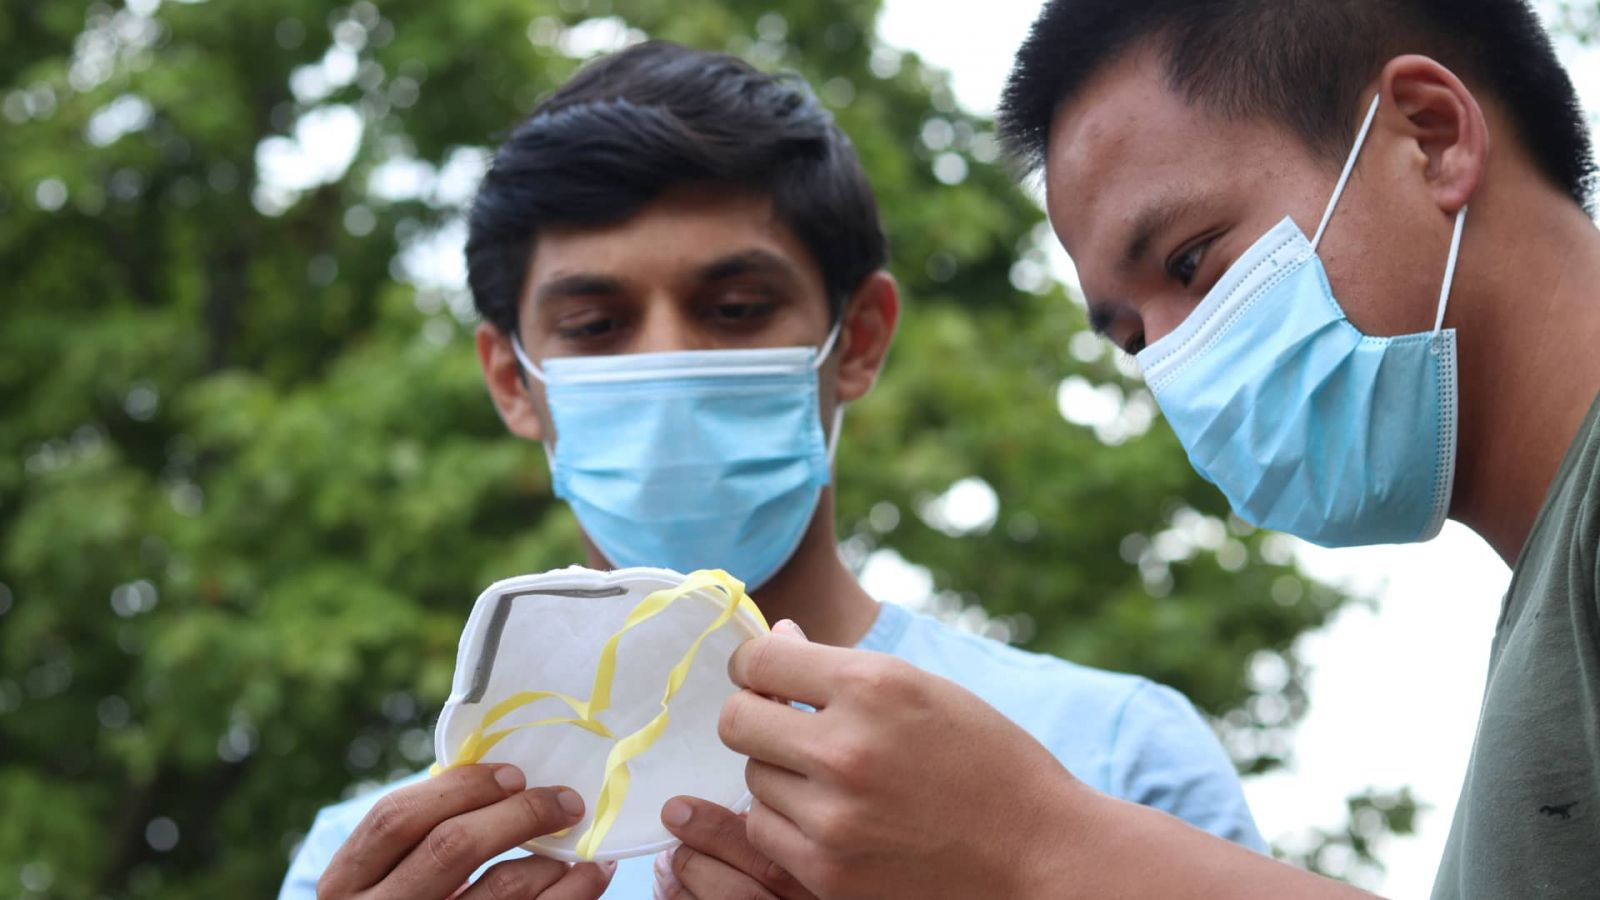 Hersh Rai and Nicholas Toan-Nang Vu discuss design improvements for traditional N95 masks.